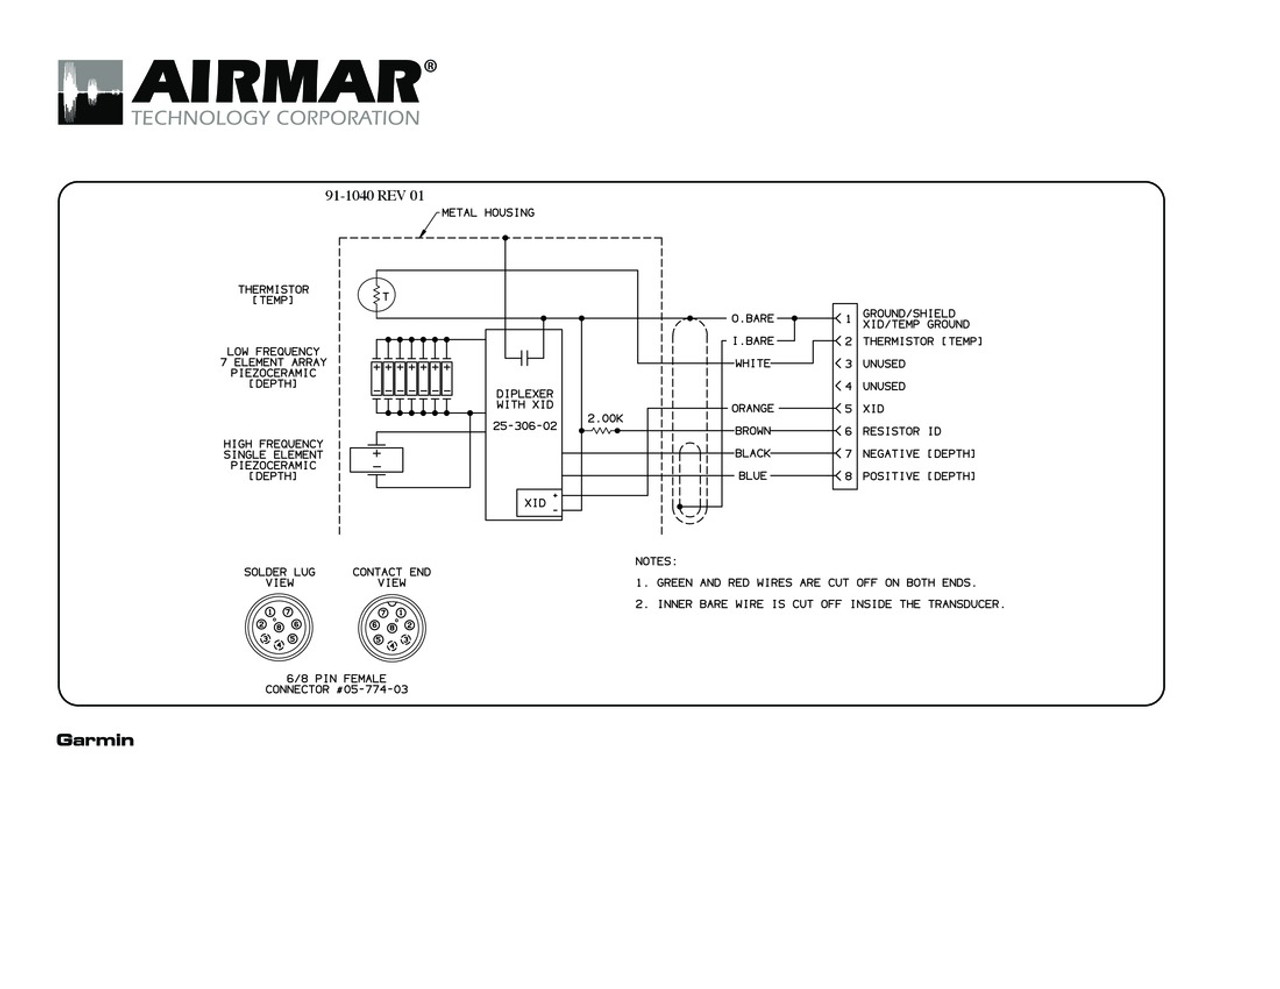 Enjoyable Garmin 4 Pin Wiring Diagram Wiring Diagram Online Wiring 101 Vihapipaaccommodationcom